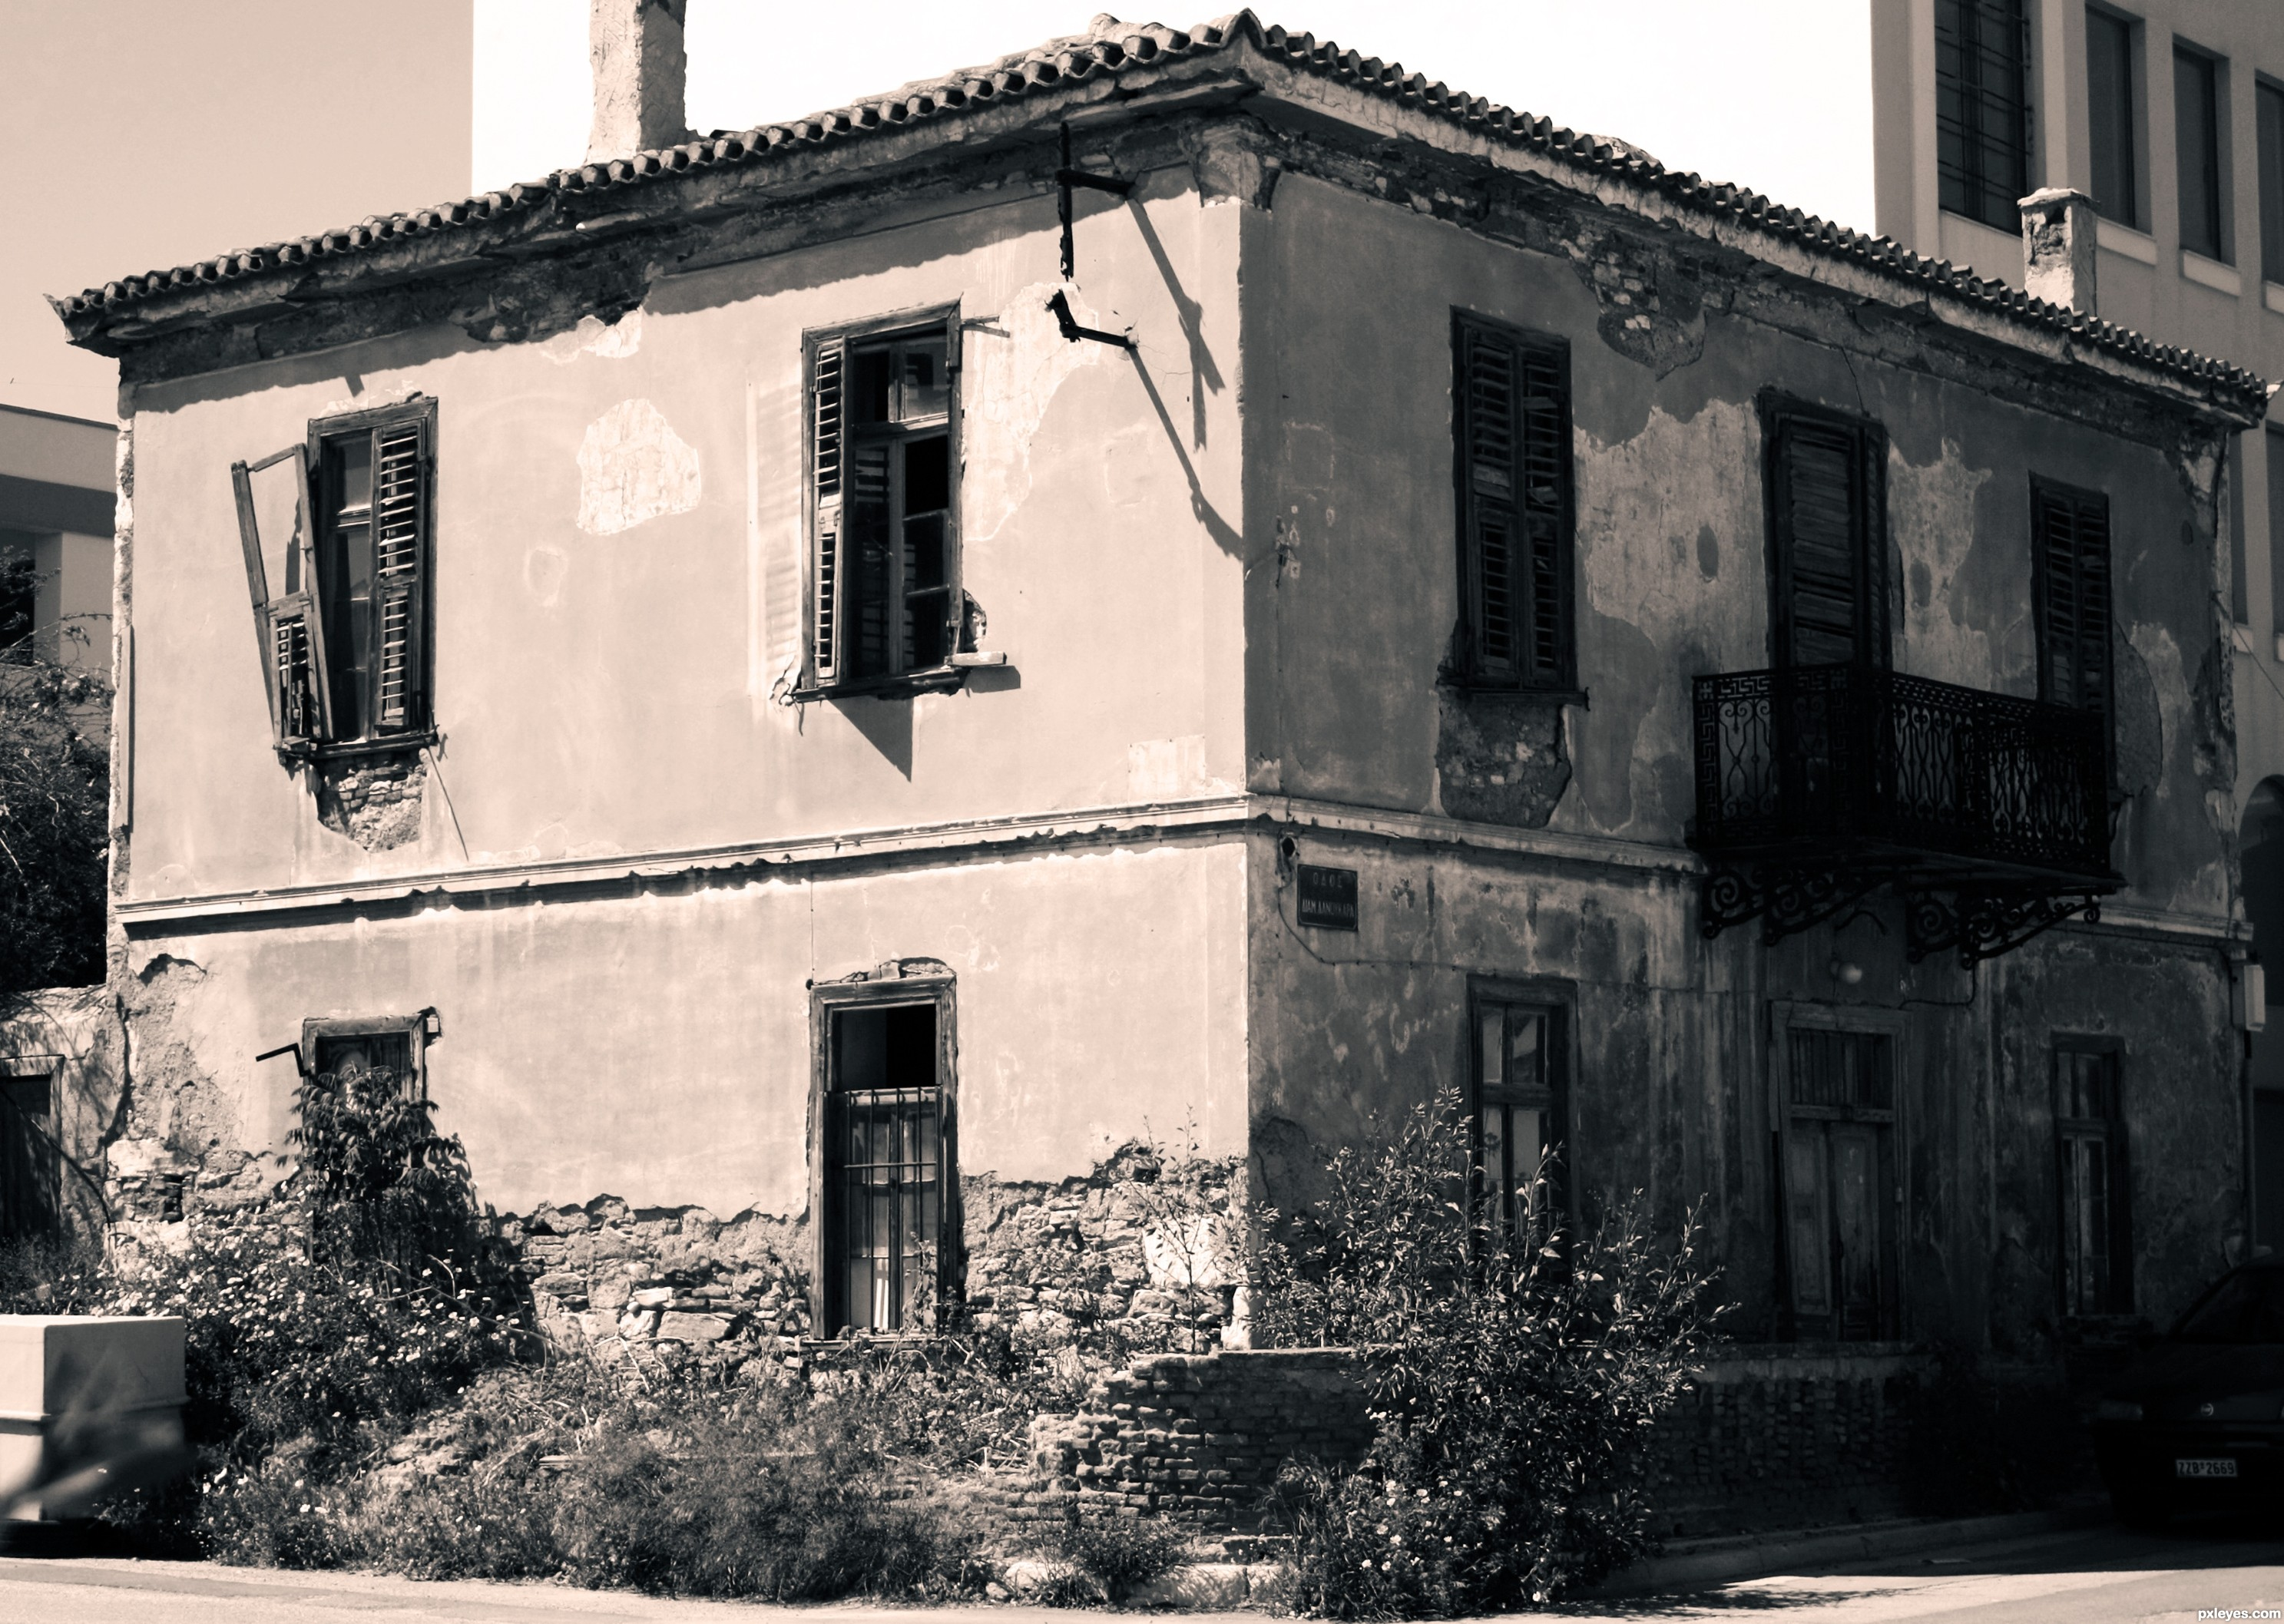 Old building picture, by jerostone for: sepia toning 3 photography ...